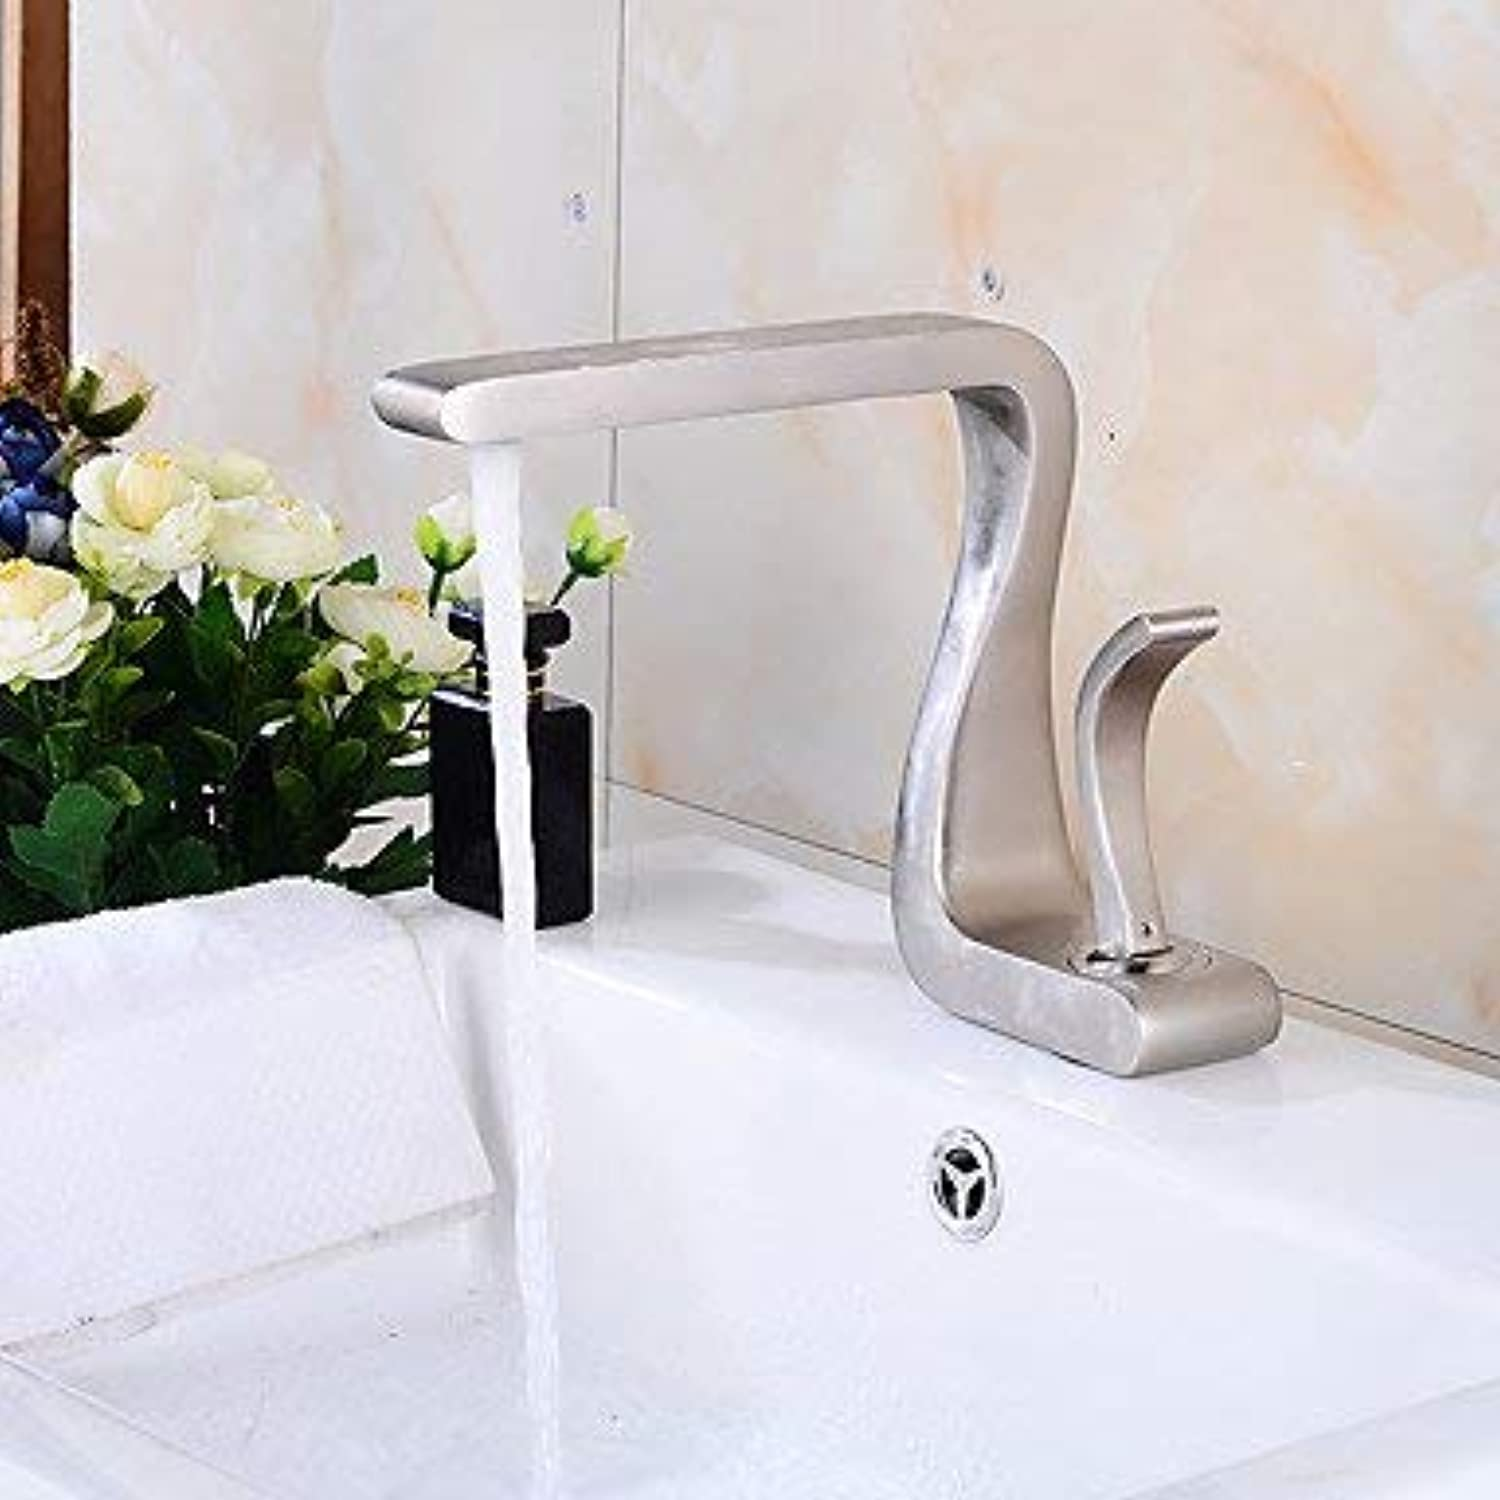 YI KUI Basin Faucets Faucet Single Handle Toilet Waterfall Bathroom Sink Faucet